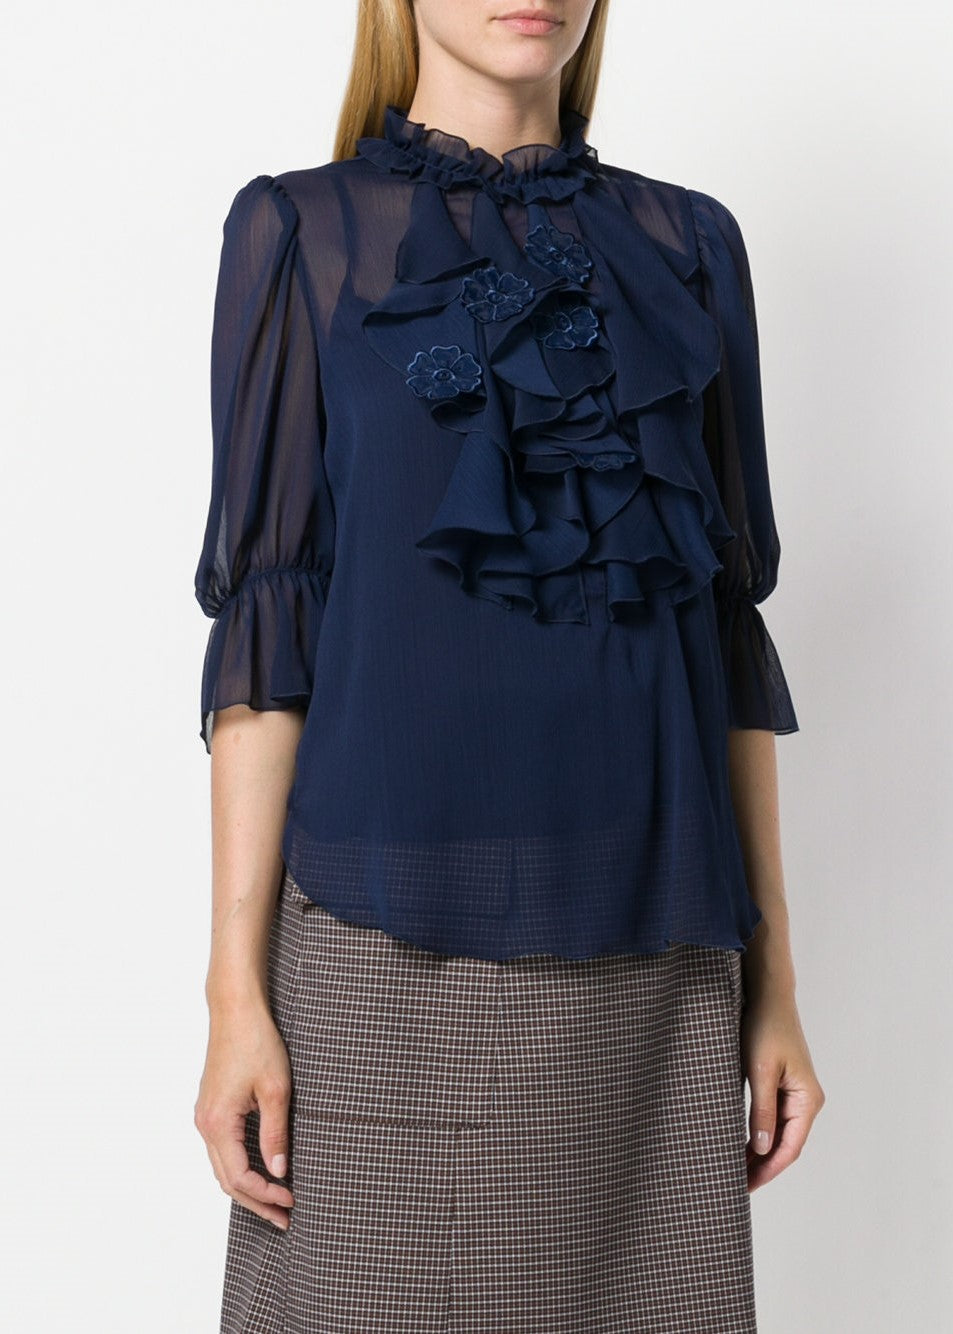 See by Chloe ruffle front 3/4 sleeve blouse in navy